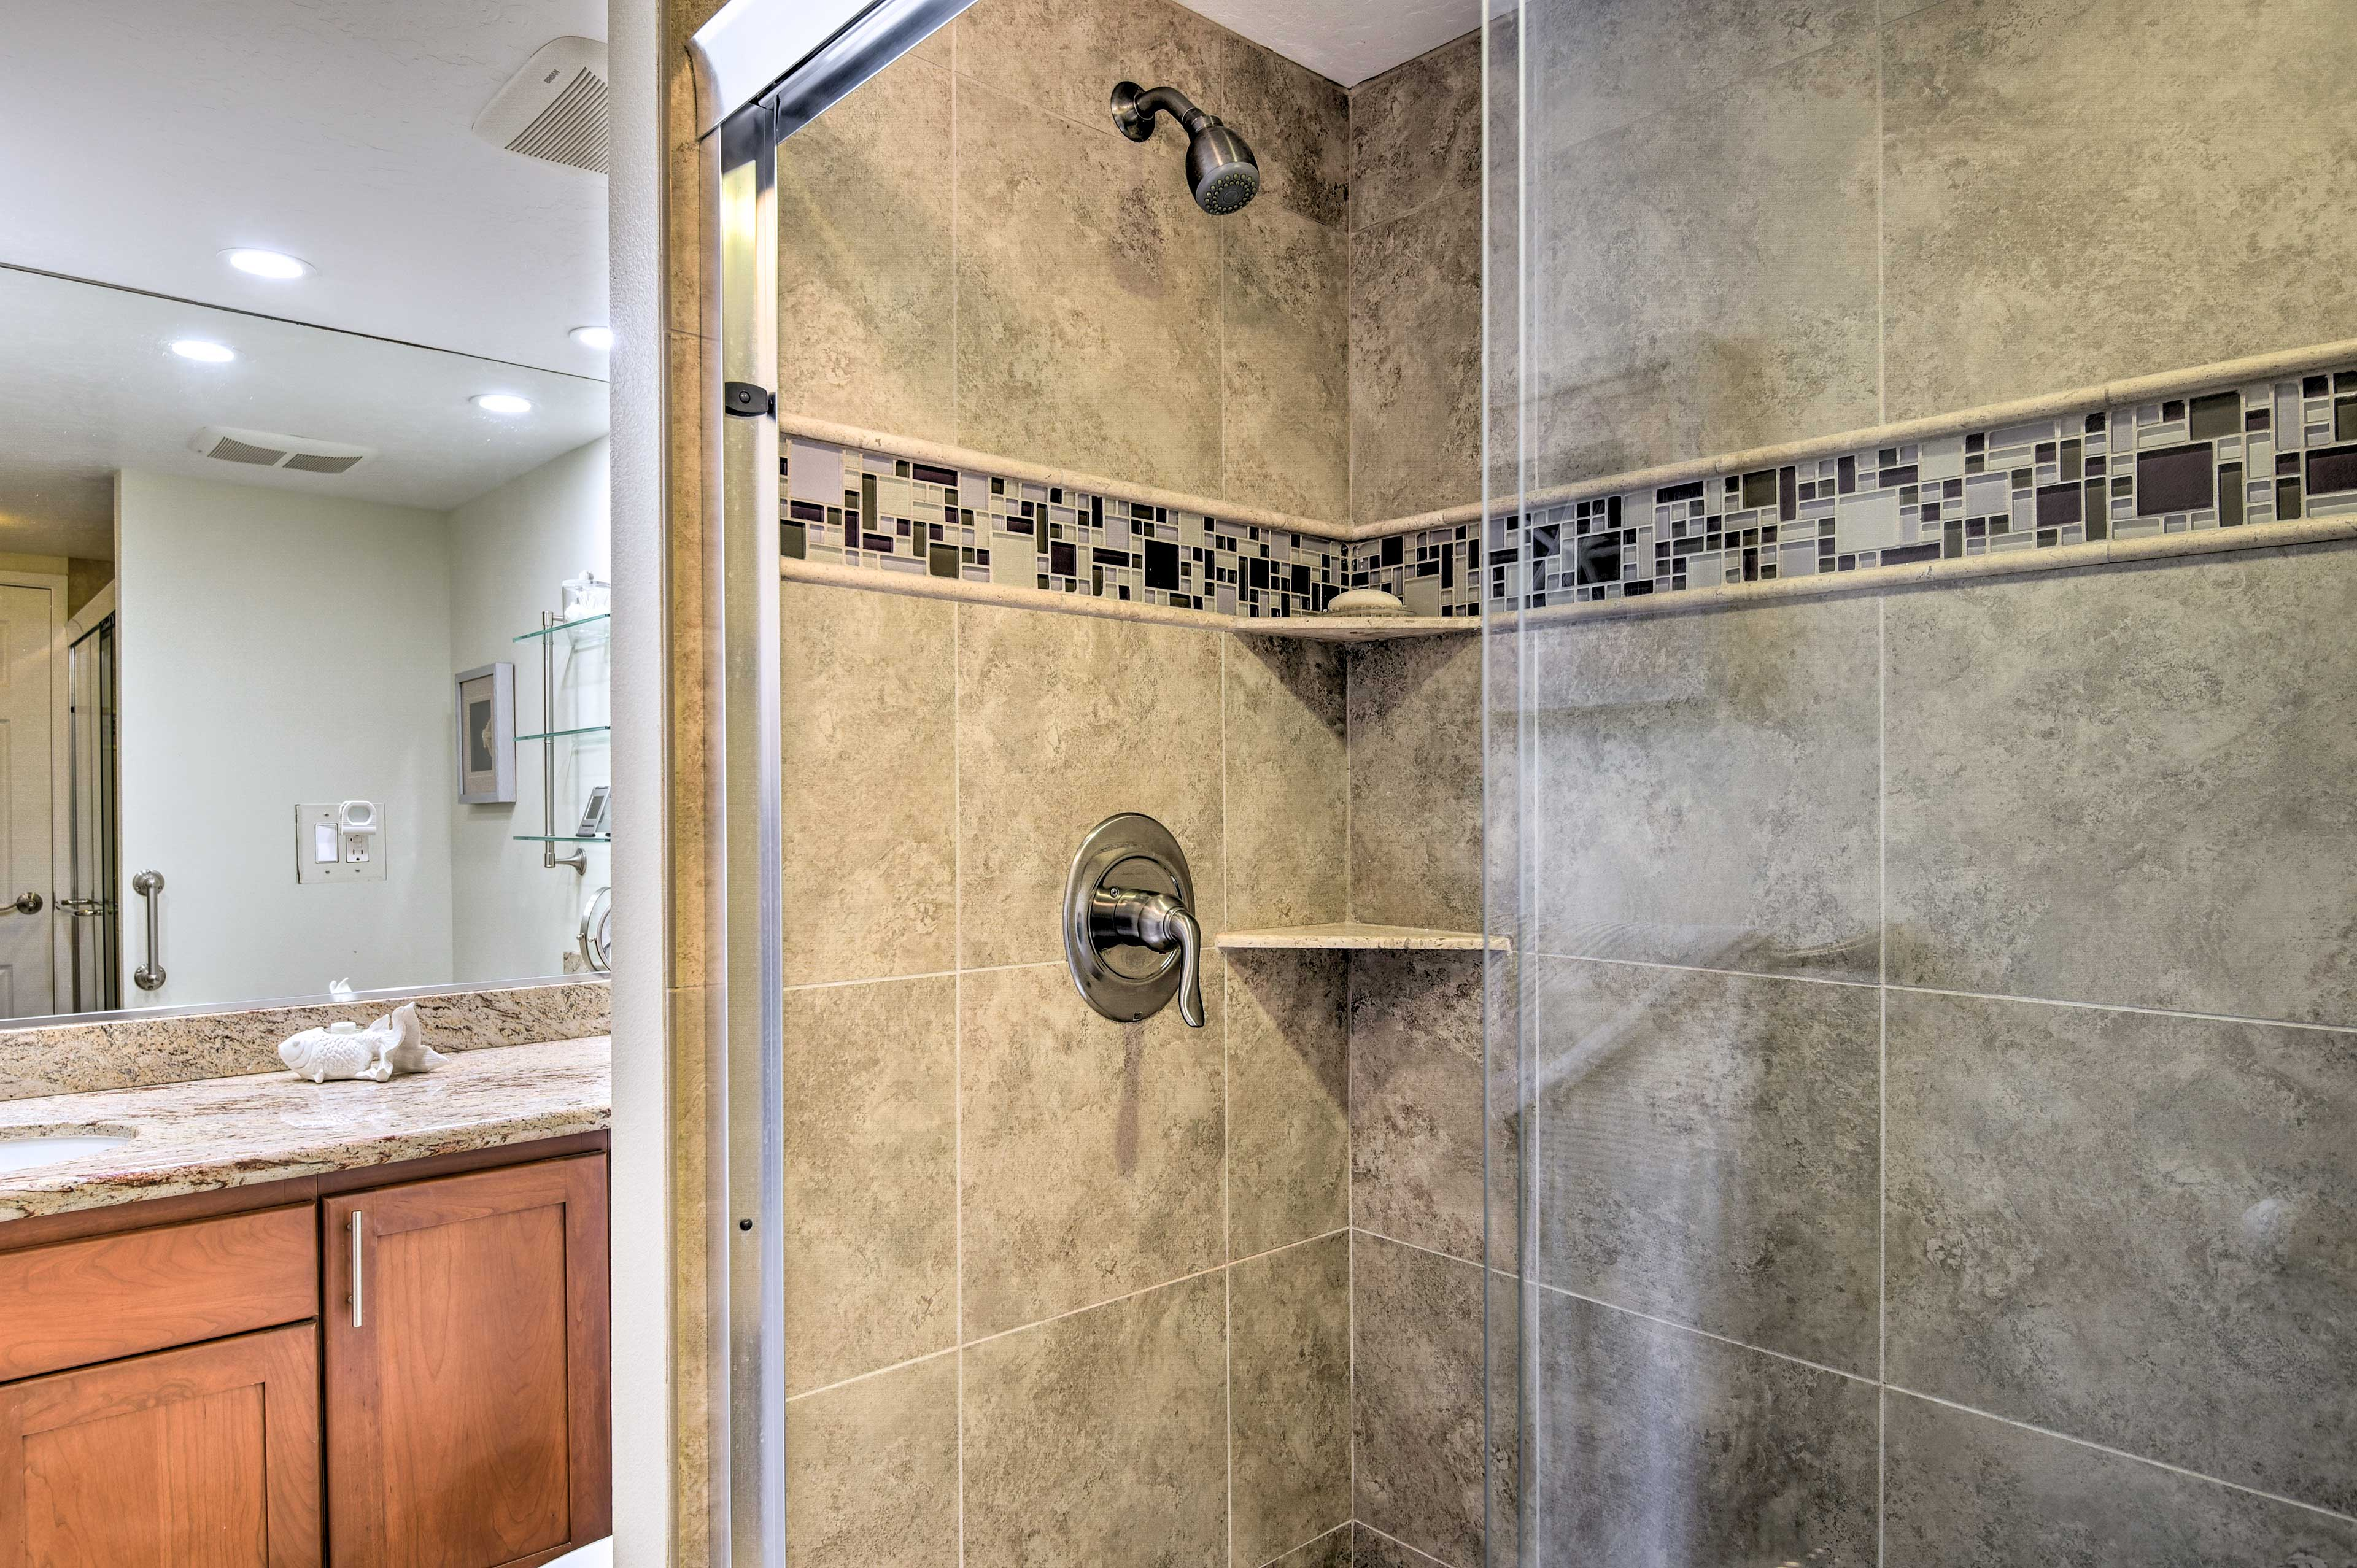 The master en-suite bathroom has a beautifully tiled walk-in shower.